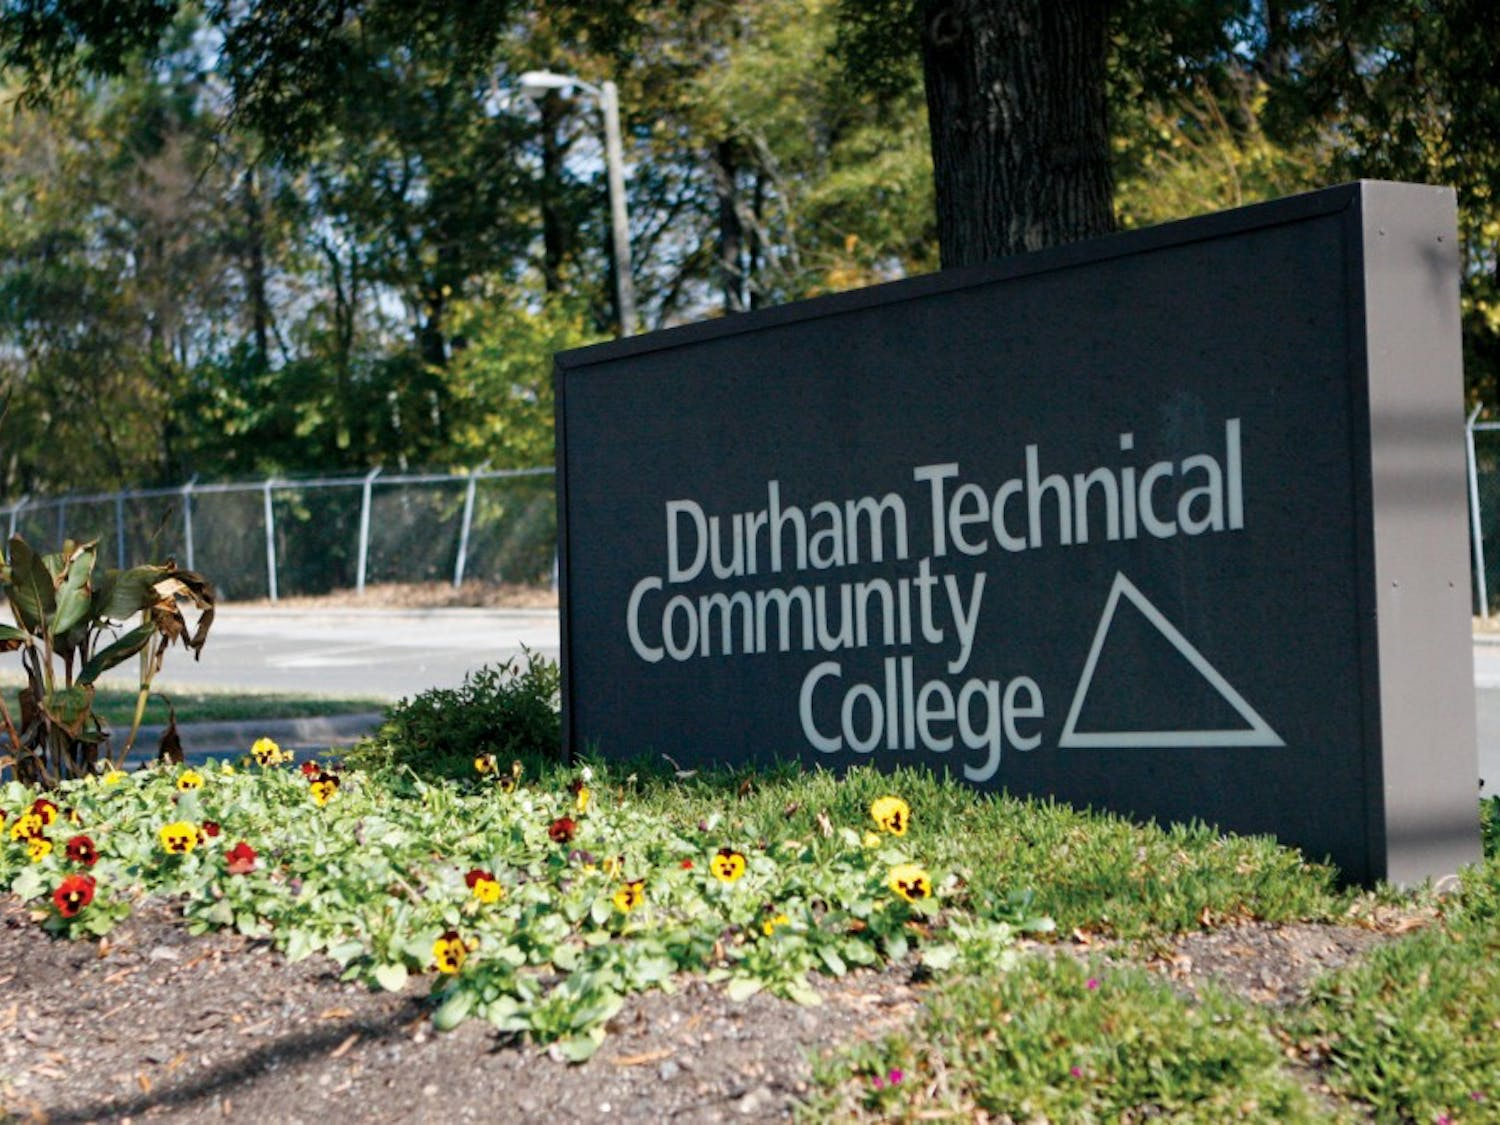 A proposed policy would give community colleges the right to reject applicants if they were deemed to pose a health or safety risk to themselves or other students. Some have criticized the proposal as being too vague and easily manipulated.